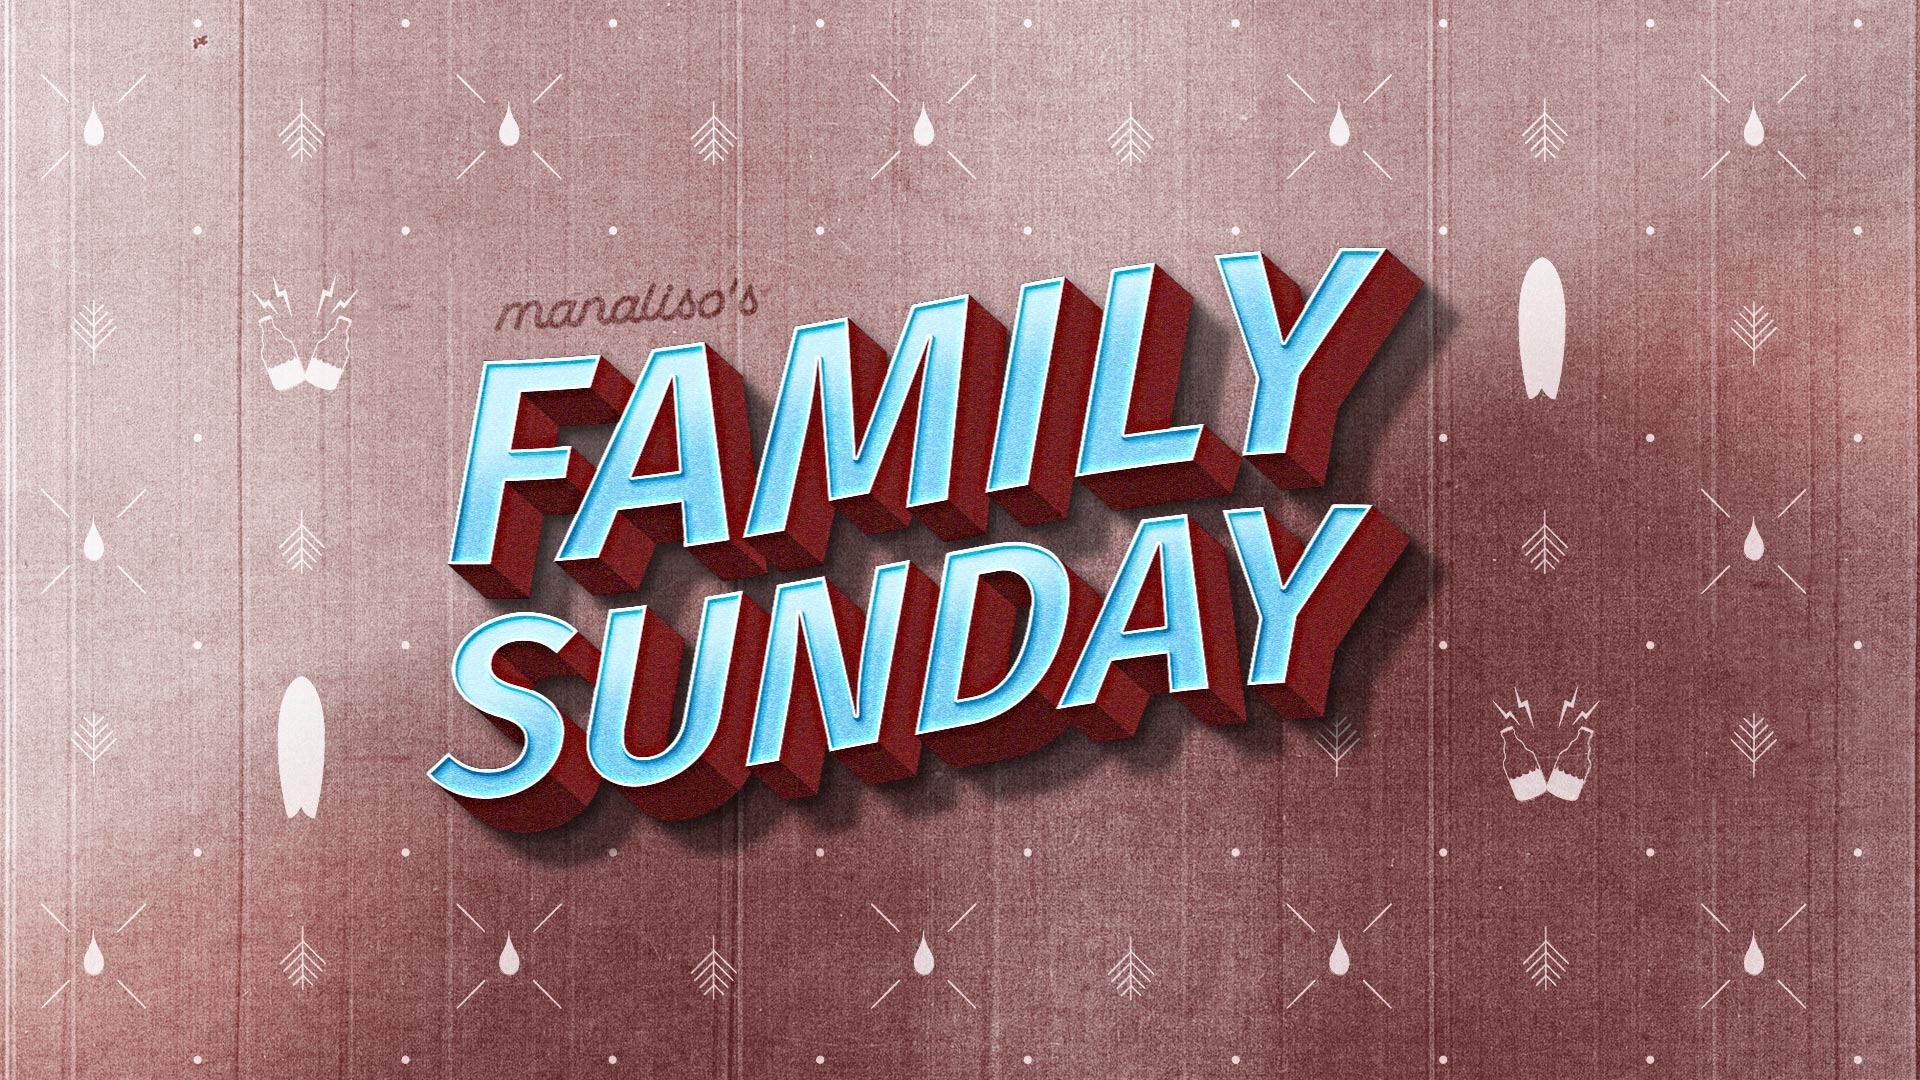 Manaliso`s family sunday